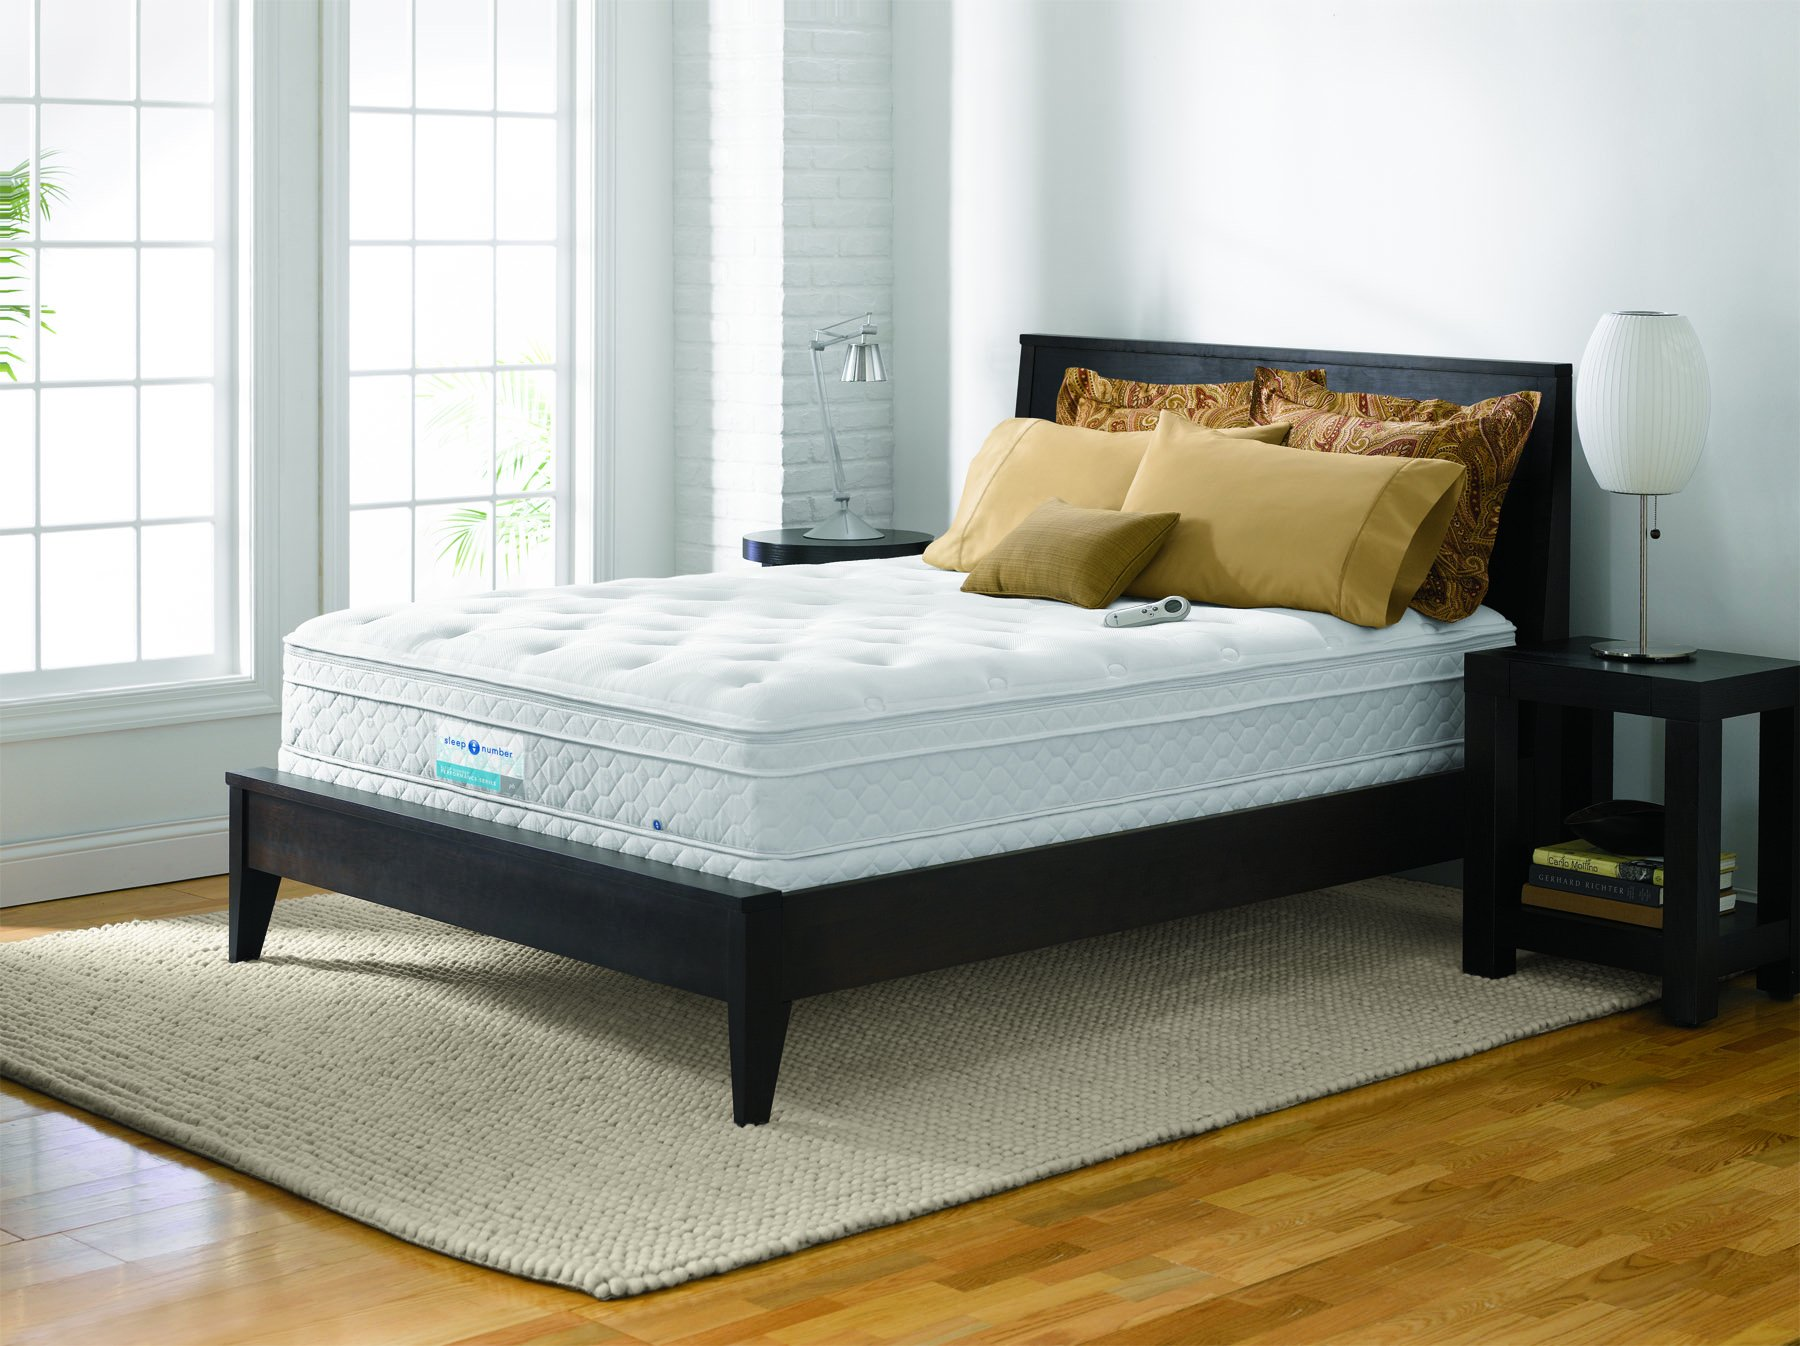 Sleep Number By Select Comfort Mattress Reviews